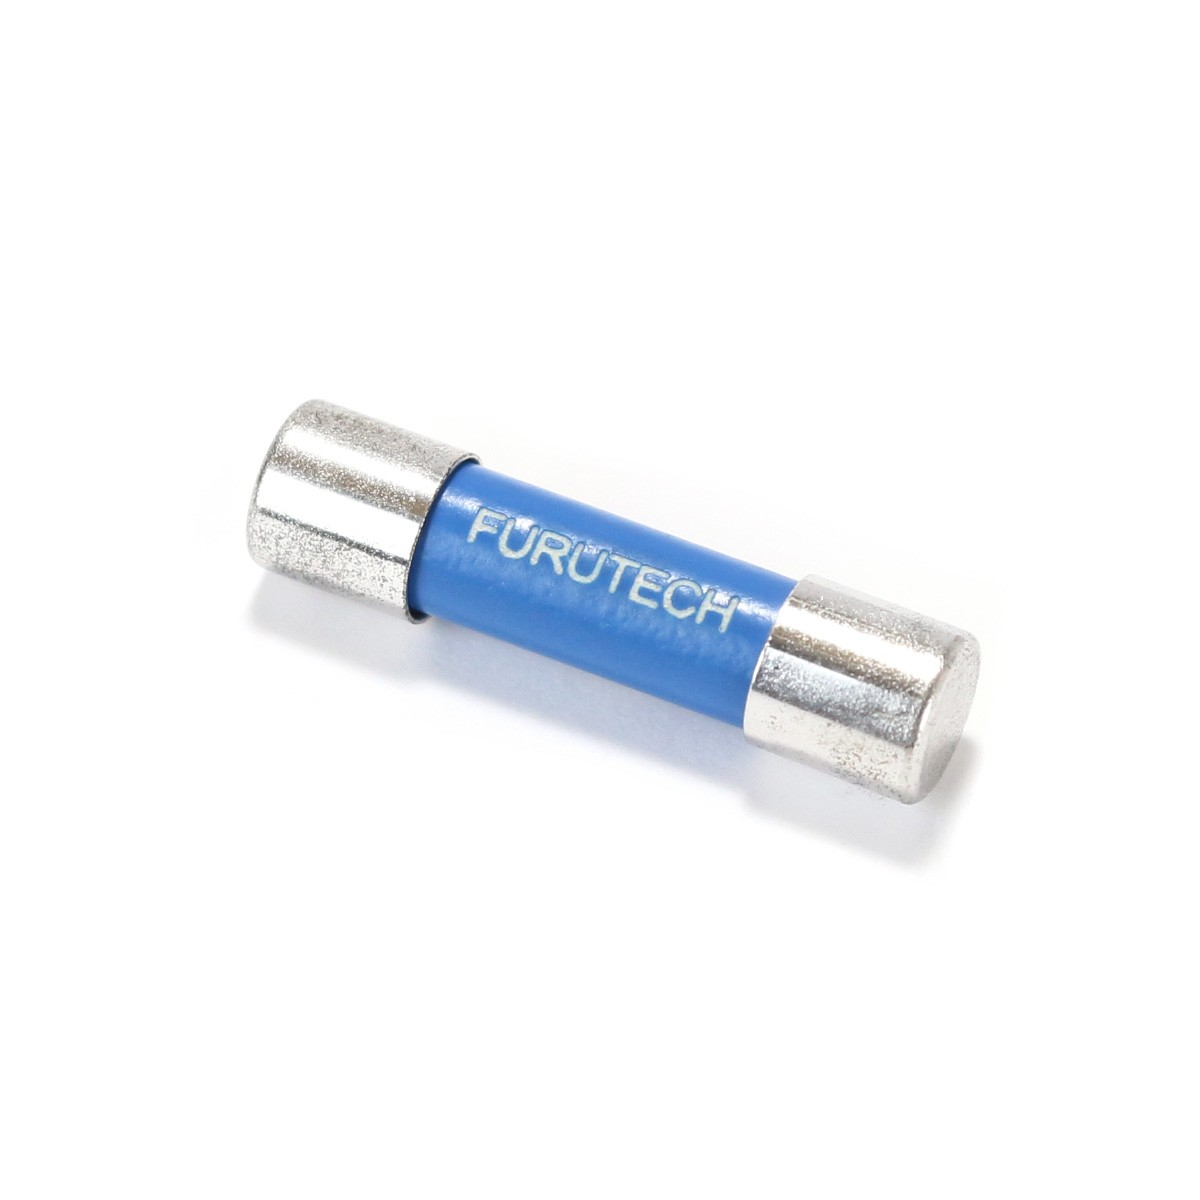 FURUTECH TF Rhodium Plated OFC Copper Fuse Type T Slow 5x20mm 1A